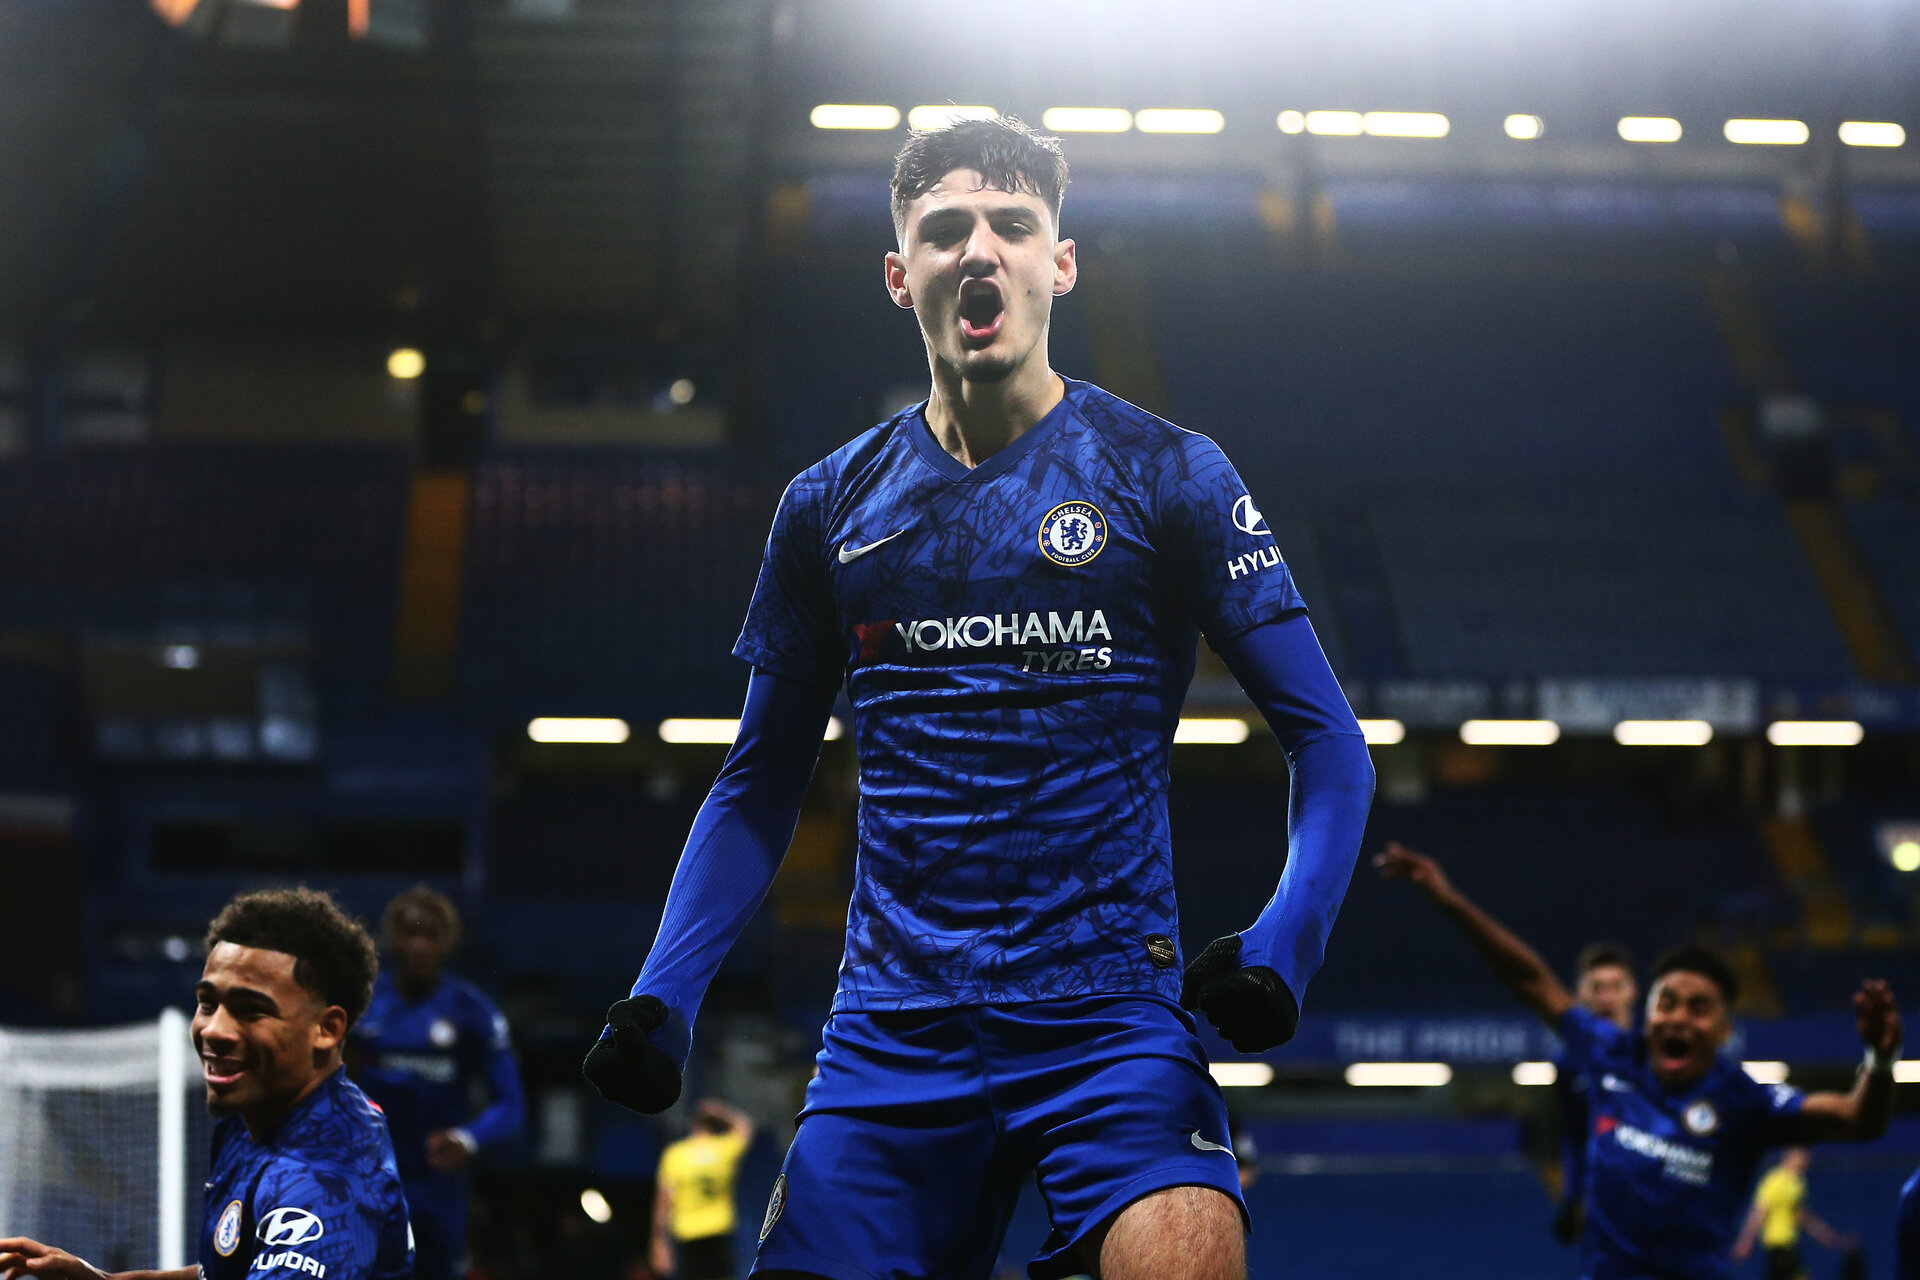 LONDON, ENGLAND - FEBRUARY 27: Armando Broja of Chelsea celebrates scoring his sides first goal during the FA Youth Cup Sixth Round match between Chelsea FC and Millwall FC at Stamford Bridge on February 27, 2020 in London, England. (Photo by Jordan Mansfield/Getty Images)